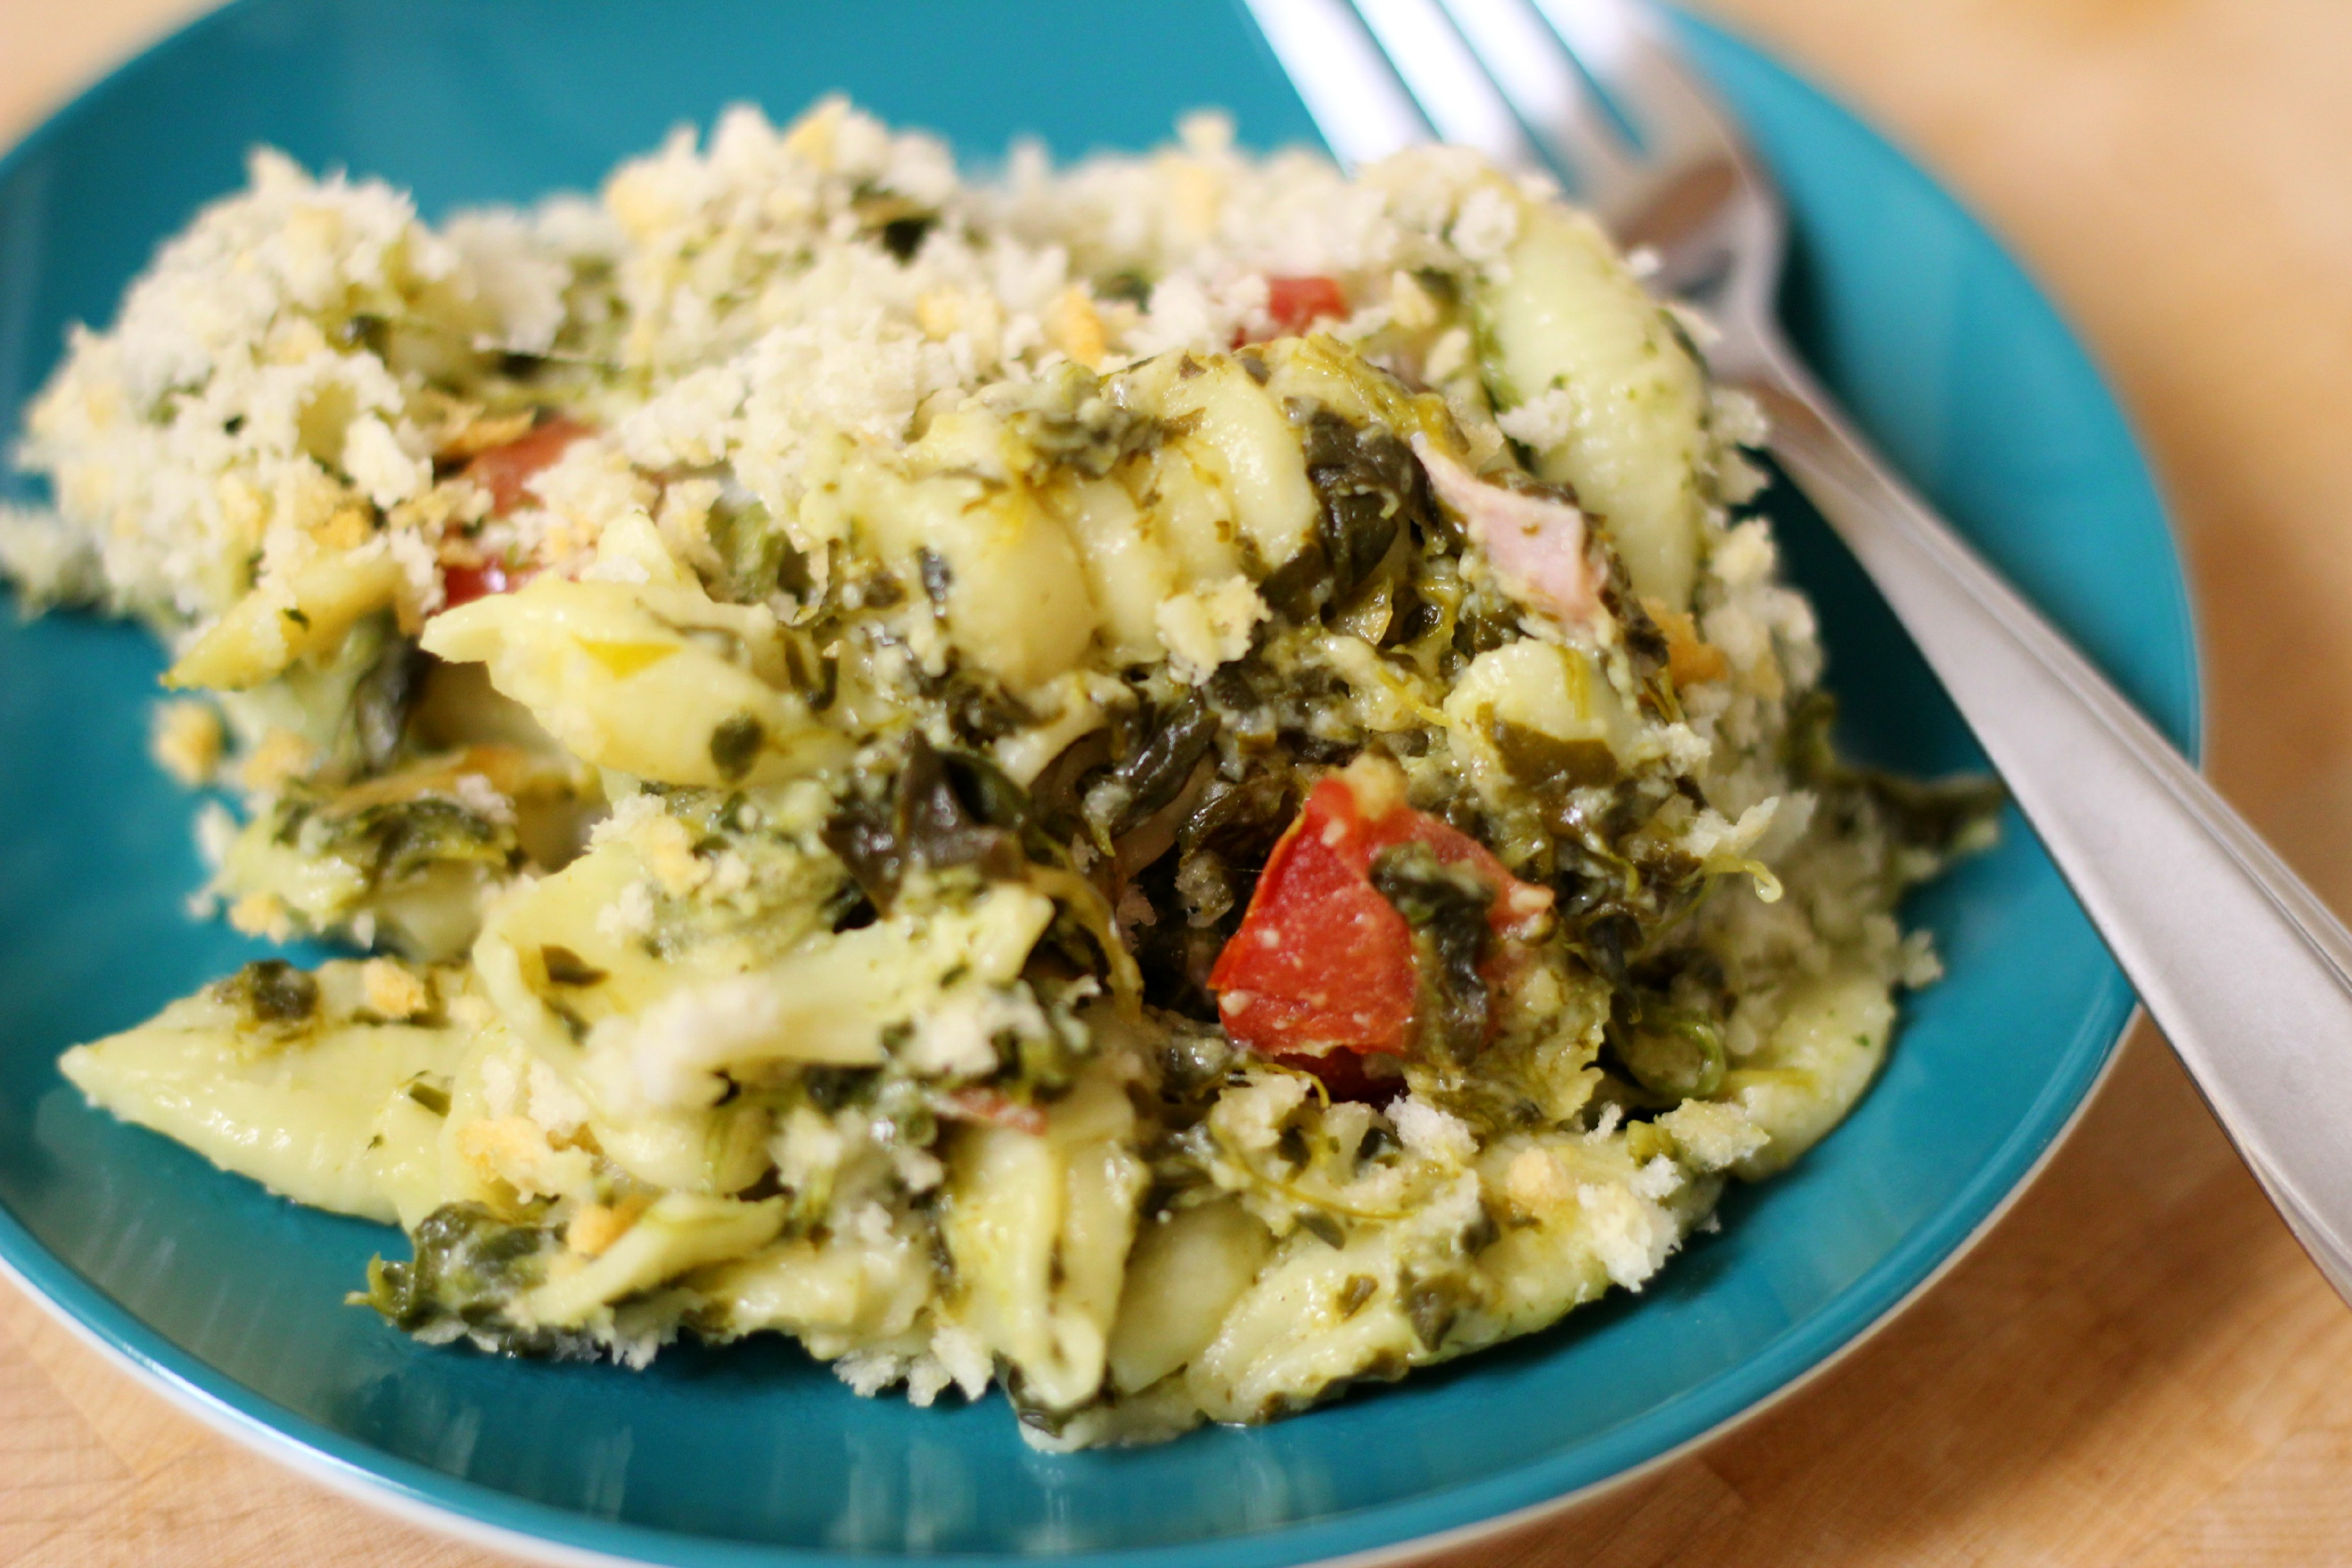 Baked Macaroni and Cheese with Spinach, Tomatoes, and Ham